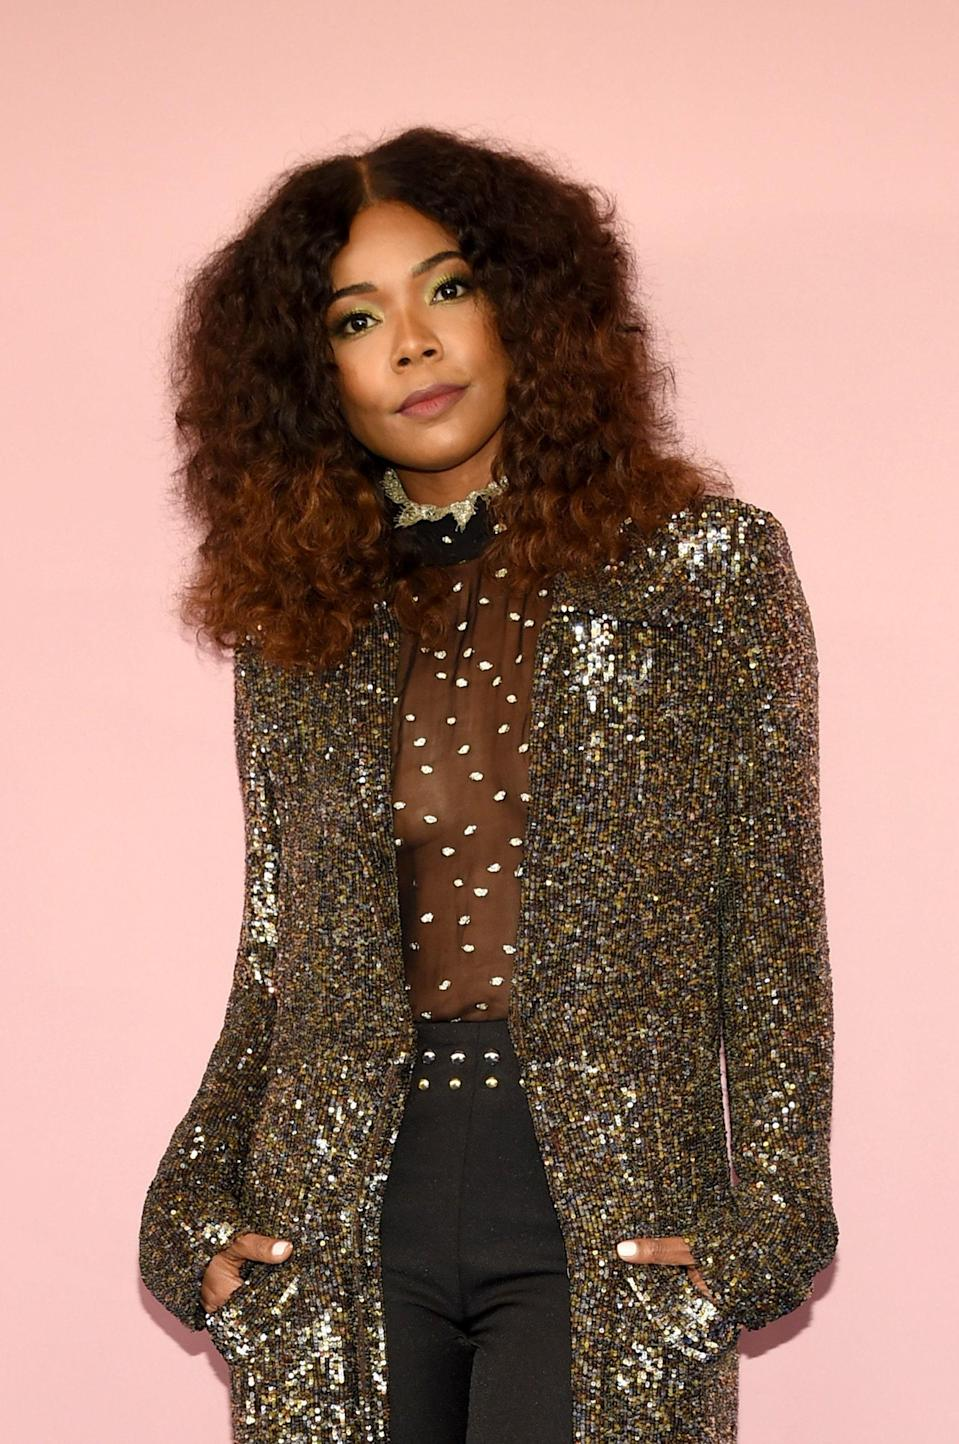 """To get curls to really pop, add a variation of warm shades on roots and ends. To get a similar look at home, celebrity hairstylist <a href=""""https://www.instagram.com/derickmonroe/?hl=en"""" rel=""""nofollow noopener"""" target=""""_blank"""" data-ylk=""""slk:Derick Monroe"""" class=""""link rapid-noclick-resp"""">Derick Monroe</a> recommends <a href=""""https://amzn.to/2V5dsFY"""" rel=""""nofollow noopener"""" target=""""_blank"""" data-ylk=""""slk:Dark & Lovely Fade Resist in Chestnut Brown"""" class=""""link rapid-noclick-resp"""">Dark & Lovely Fade Resist in Chestnut Brown</a> at the roots and <a href=""""https://amzn.to/3m9hHvQ"""" rel=""""nofollow noopener"""" target=""""_blank"""" data-ylk=""""slk:Honey Blonde"""" class=""""link rapid-noclick-resp"""">Honey Blonde</a> on ends. Since both colors are on the warm side, the result doesn't look fake, just super dimensional and pretty."""